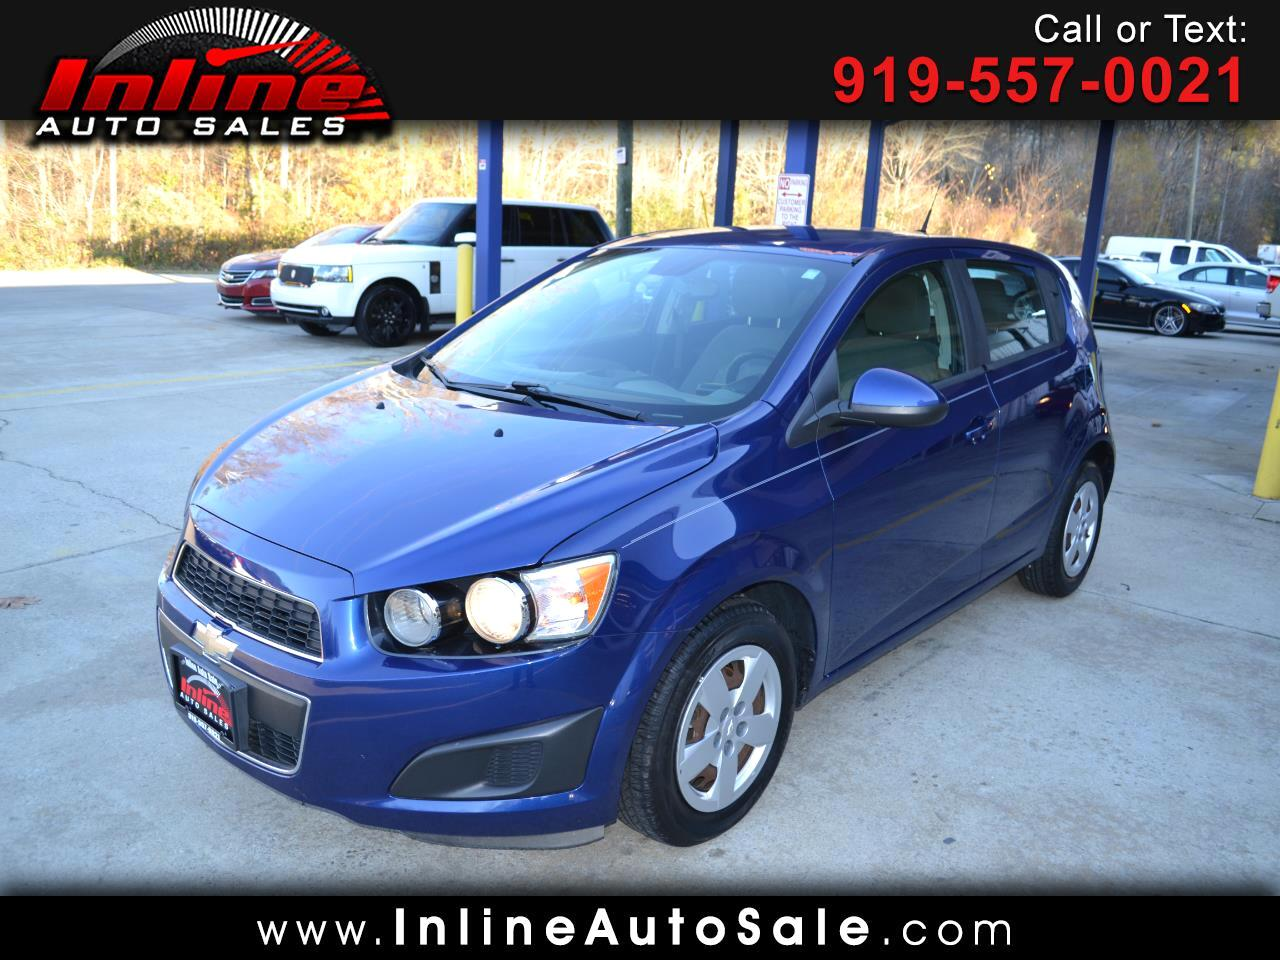 2013 Chevrolet Sonic 5dr HB Manual LS